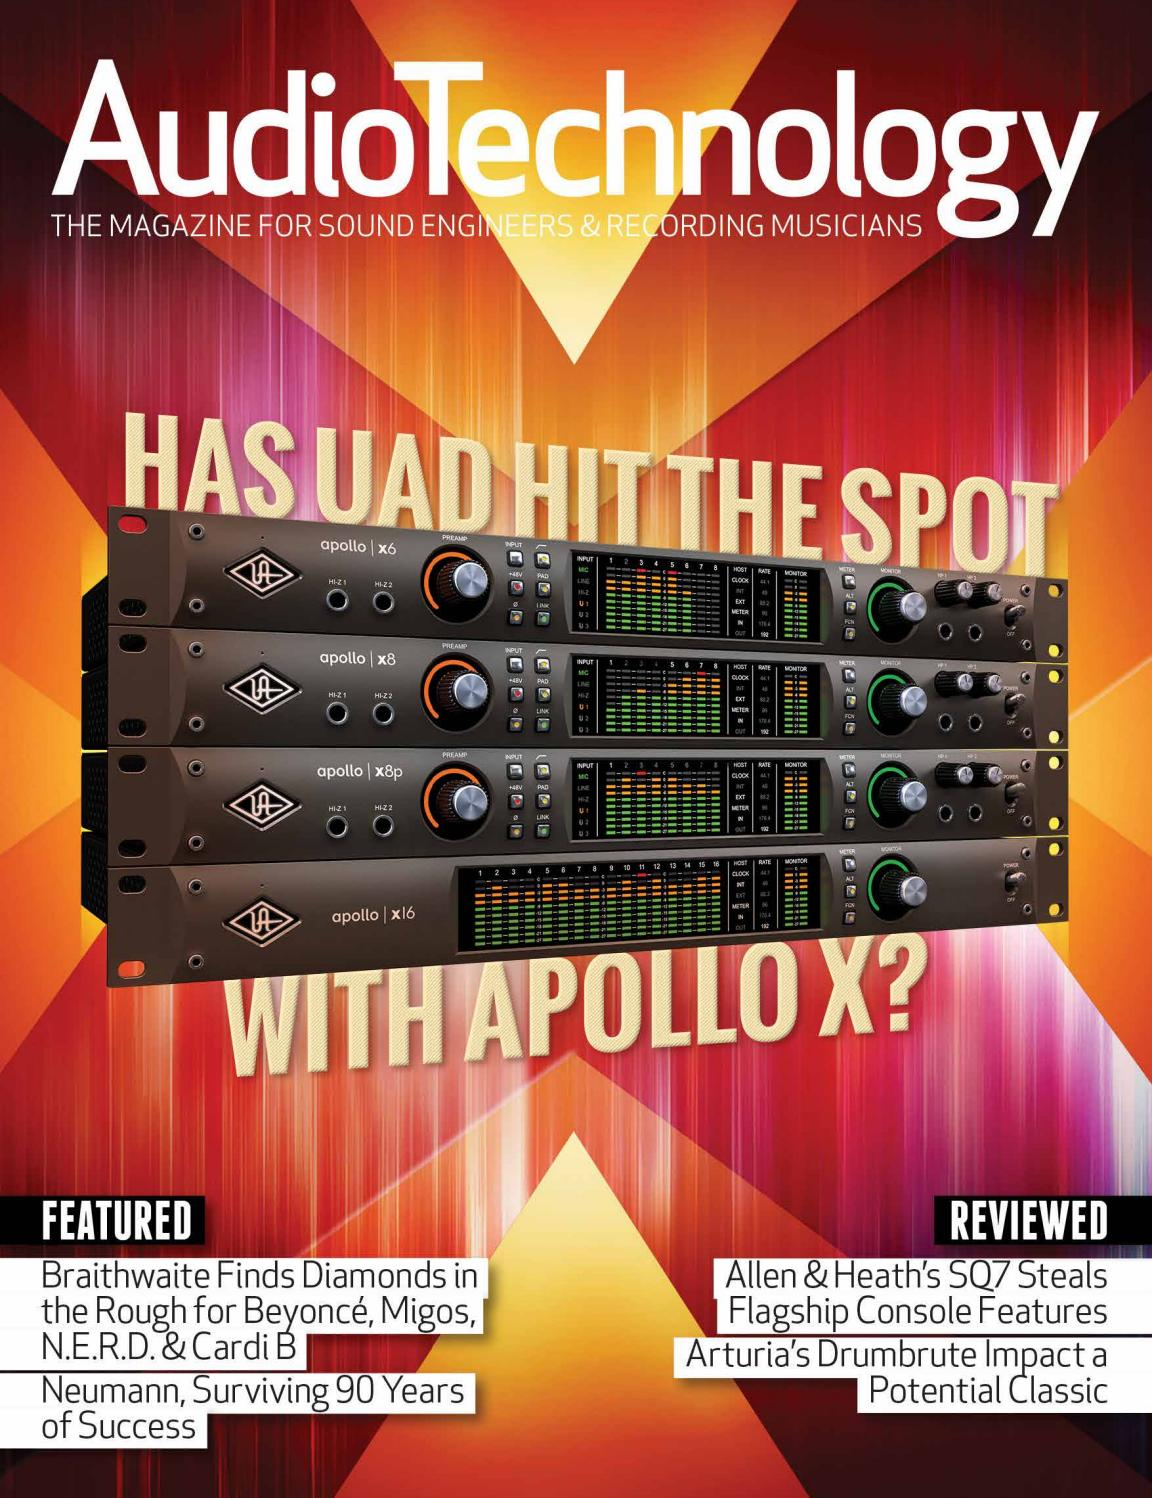 AudioTechnology App Issue 55 by Alchemedia Publishing - issuu